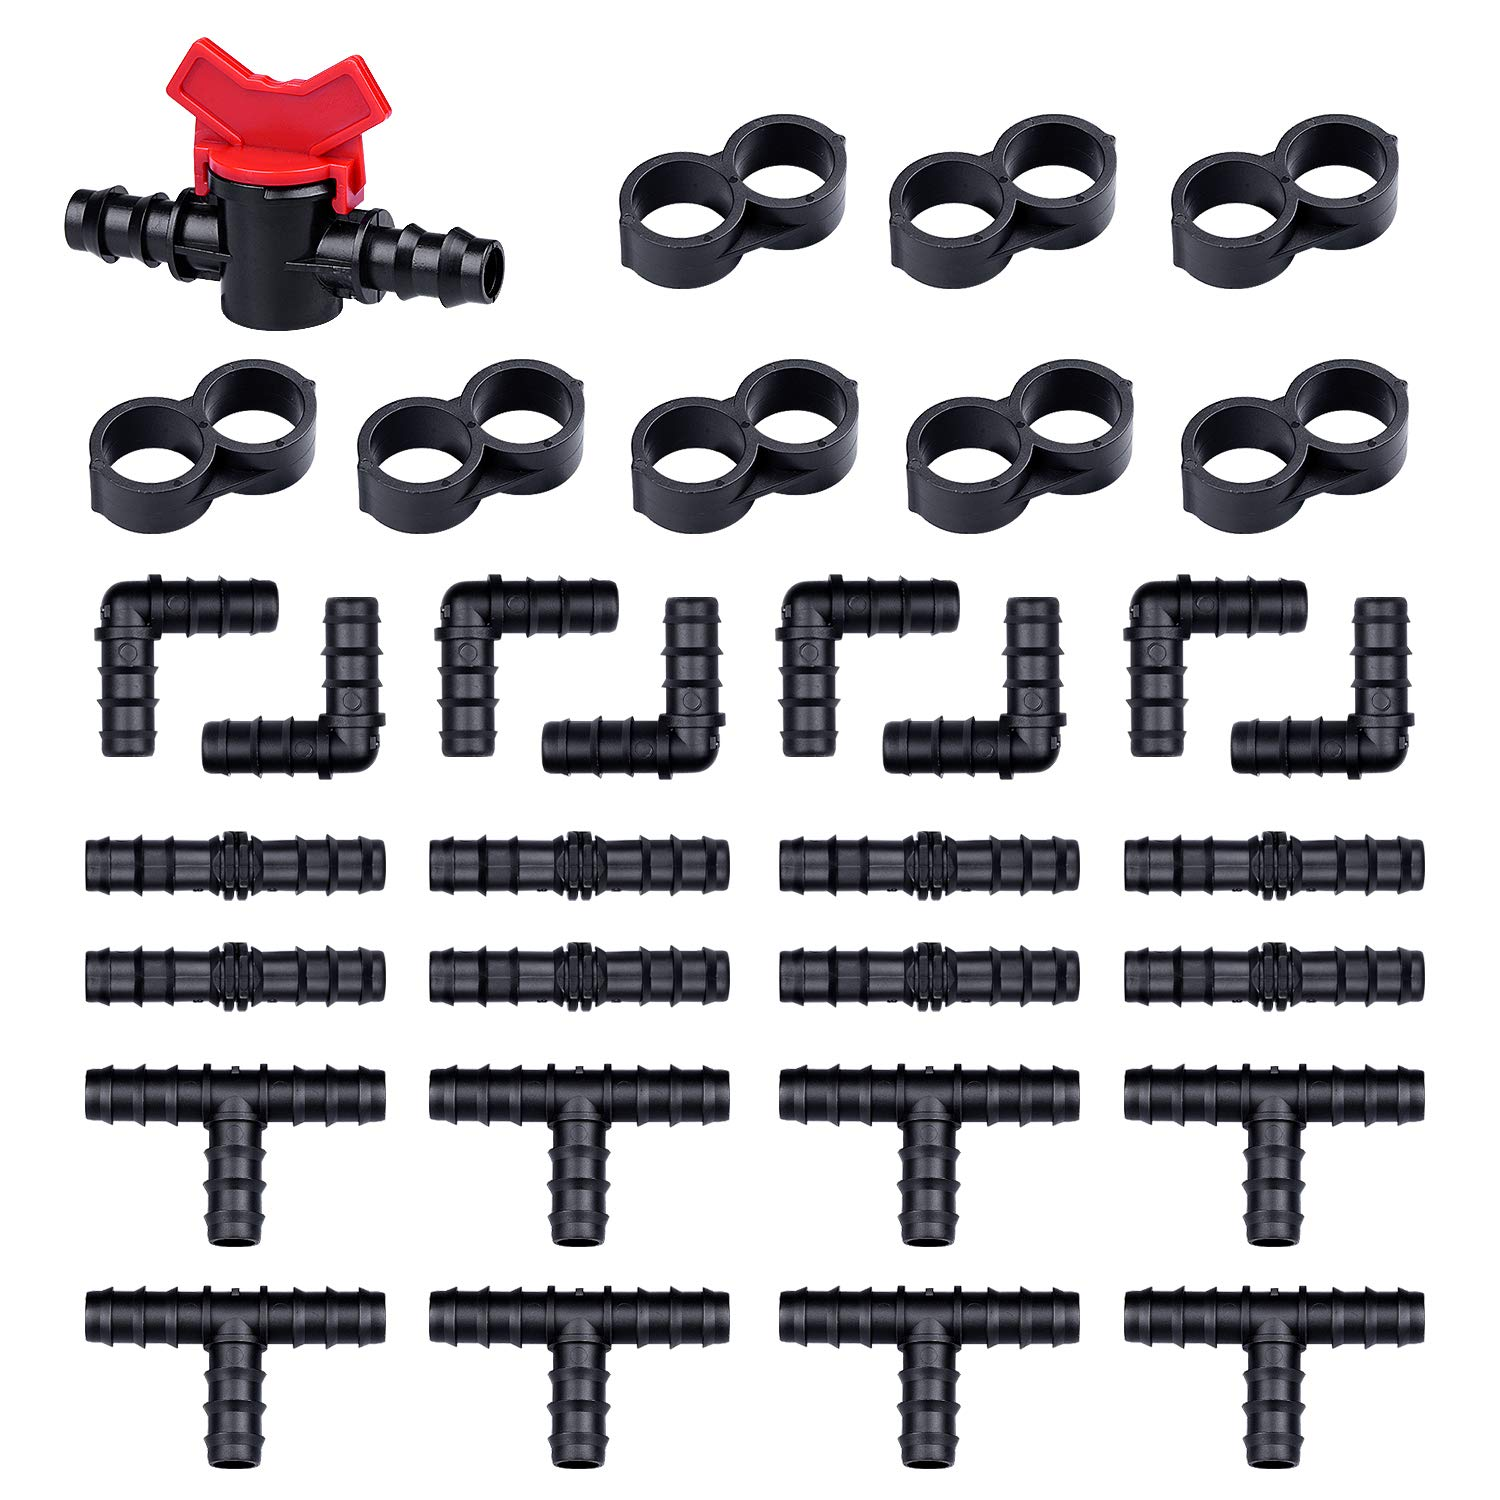 HIRALIY Drip Irrigation Fittings 1/2 InchTubing 33 Piece Set - 1 Switch Valve, 8 Tees, 8 Couplings, 8 Elbows, 8 End Cap Plugs- Barbed Connectors and Compatible Drip or Sprinkler Systems by HIRALIY